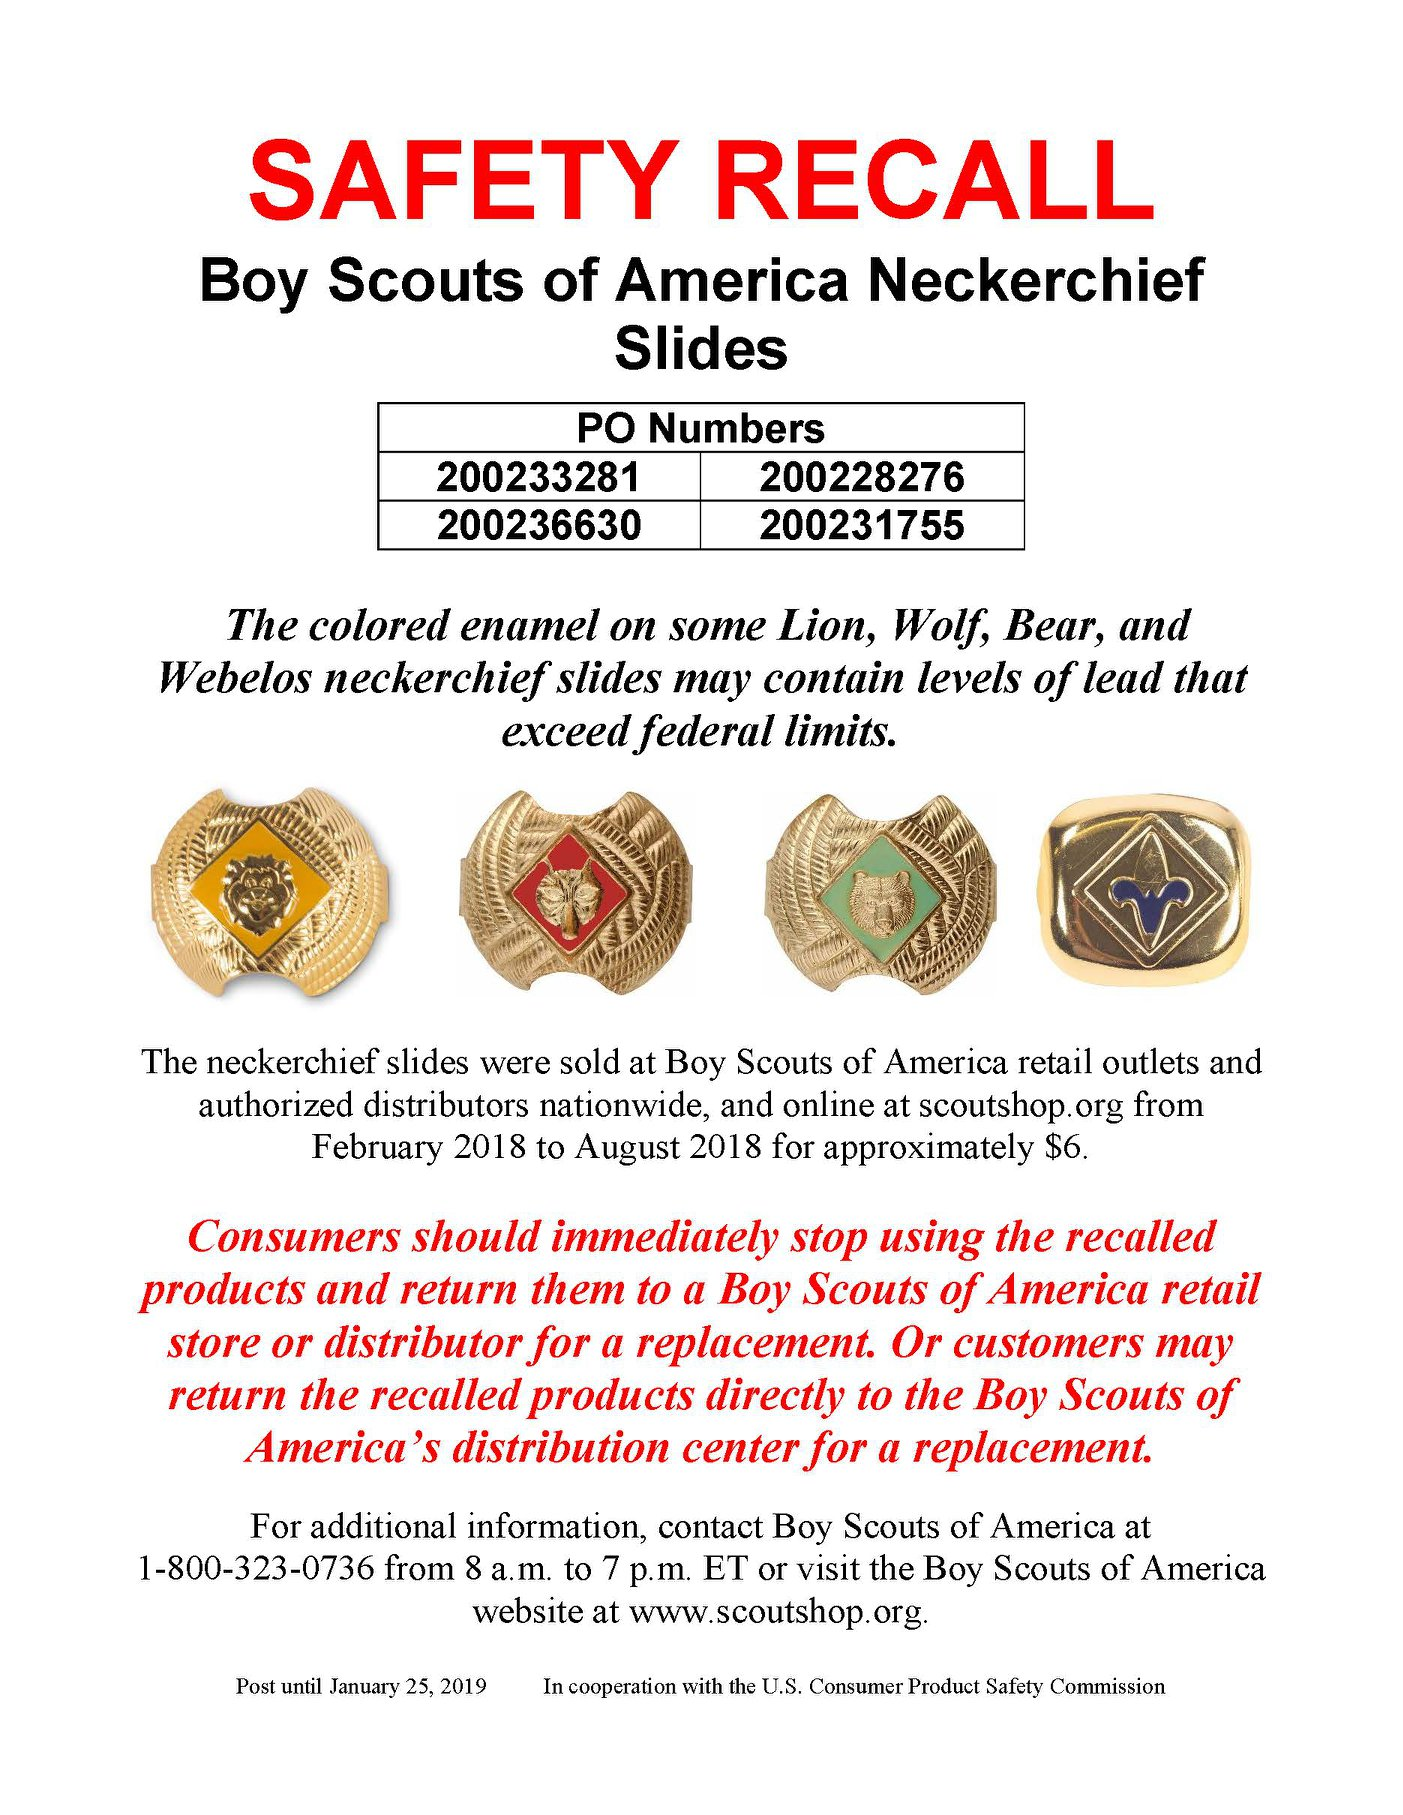 September 2018 Boy Scout Neckerchief Recall, Leaded Enamel